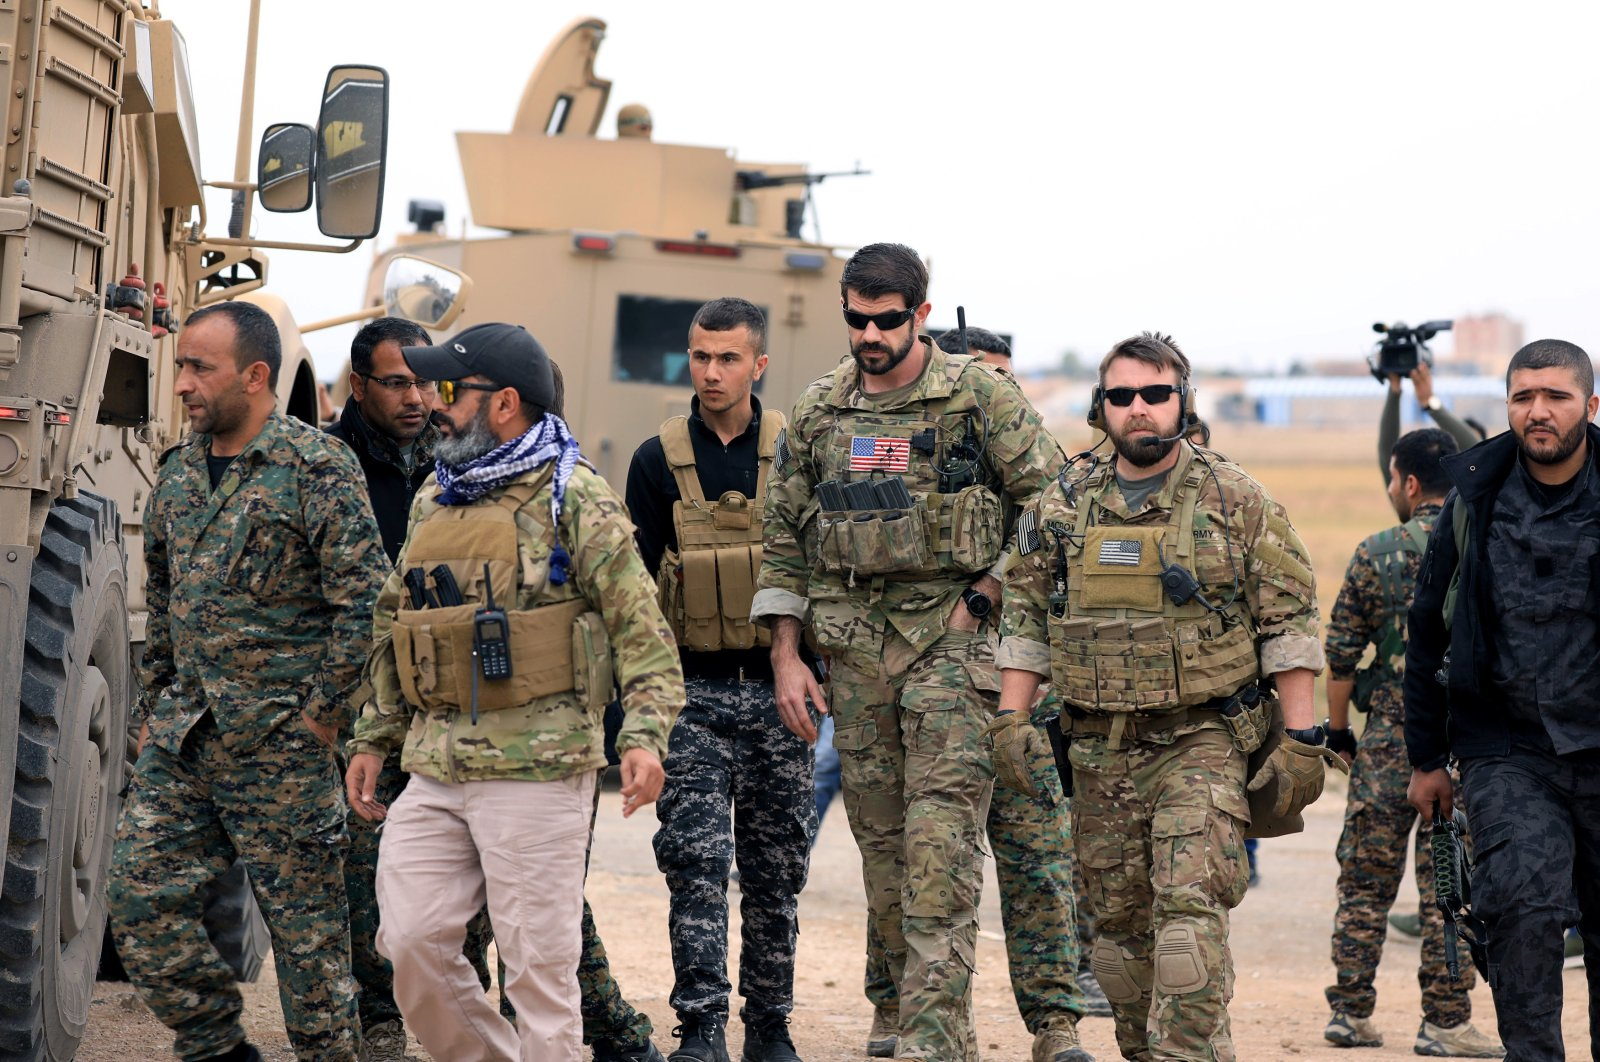 The YPG terrorists and the U.S. troops are seen during a joint patrol near the Turkish border in Hasakah, Syria, Nov. 4, 2018. (REUTERS Photo)